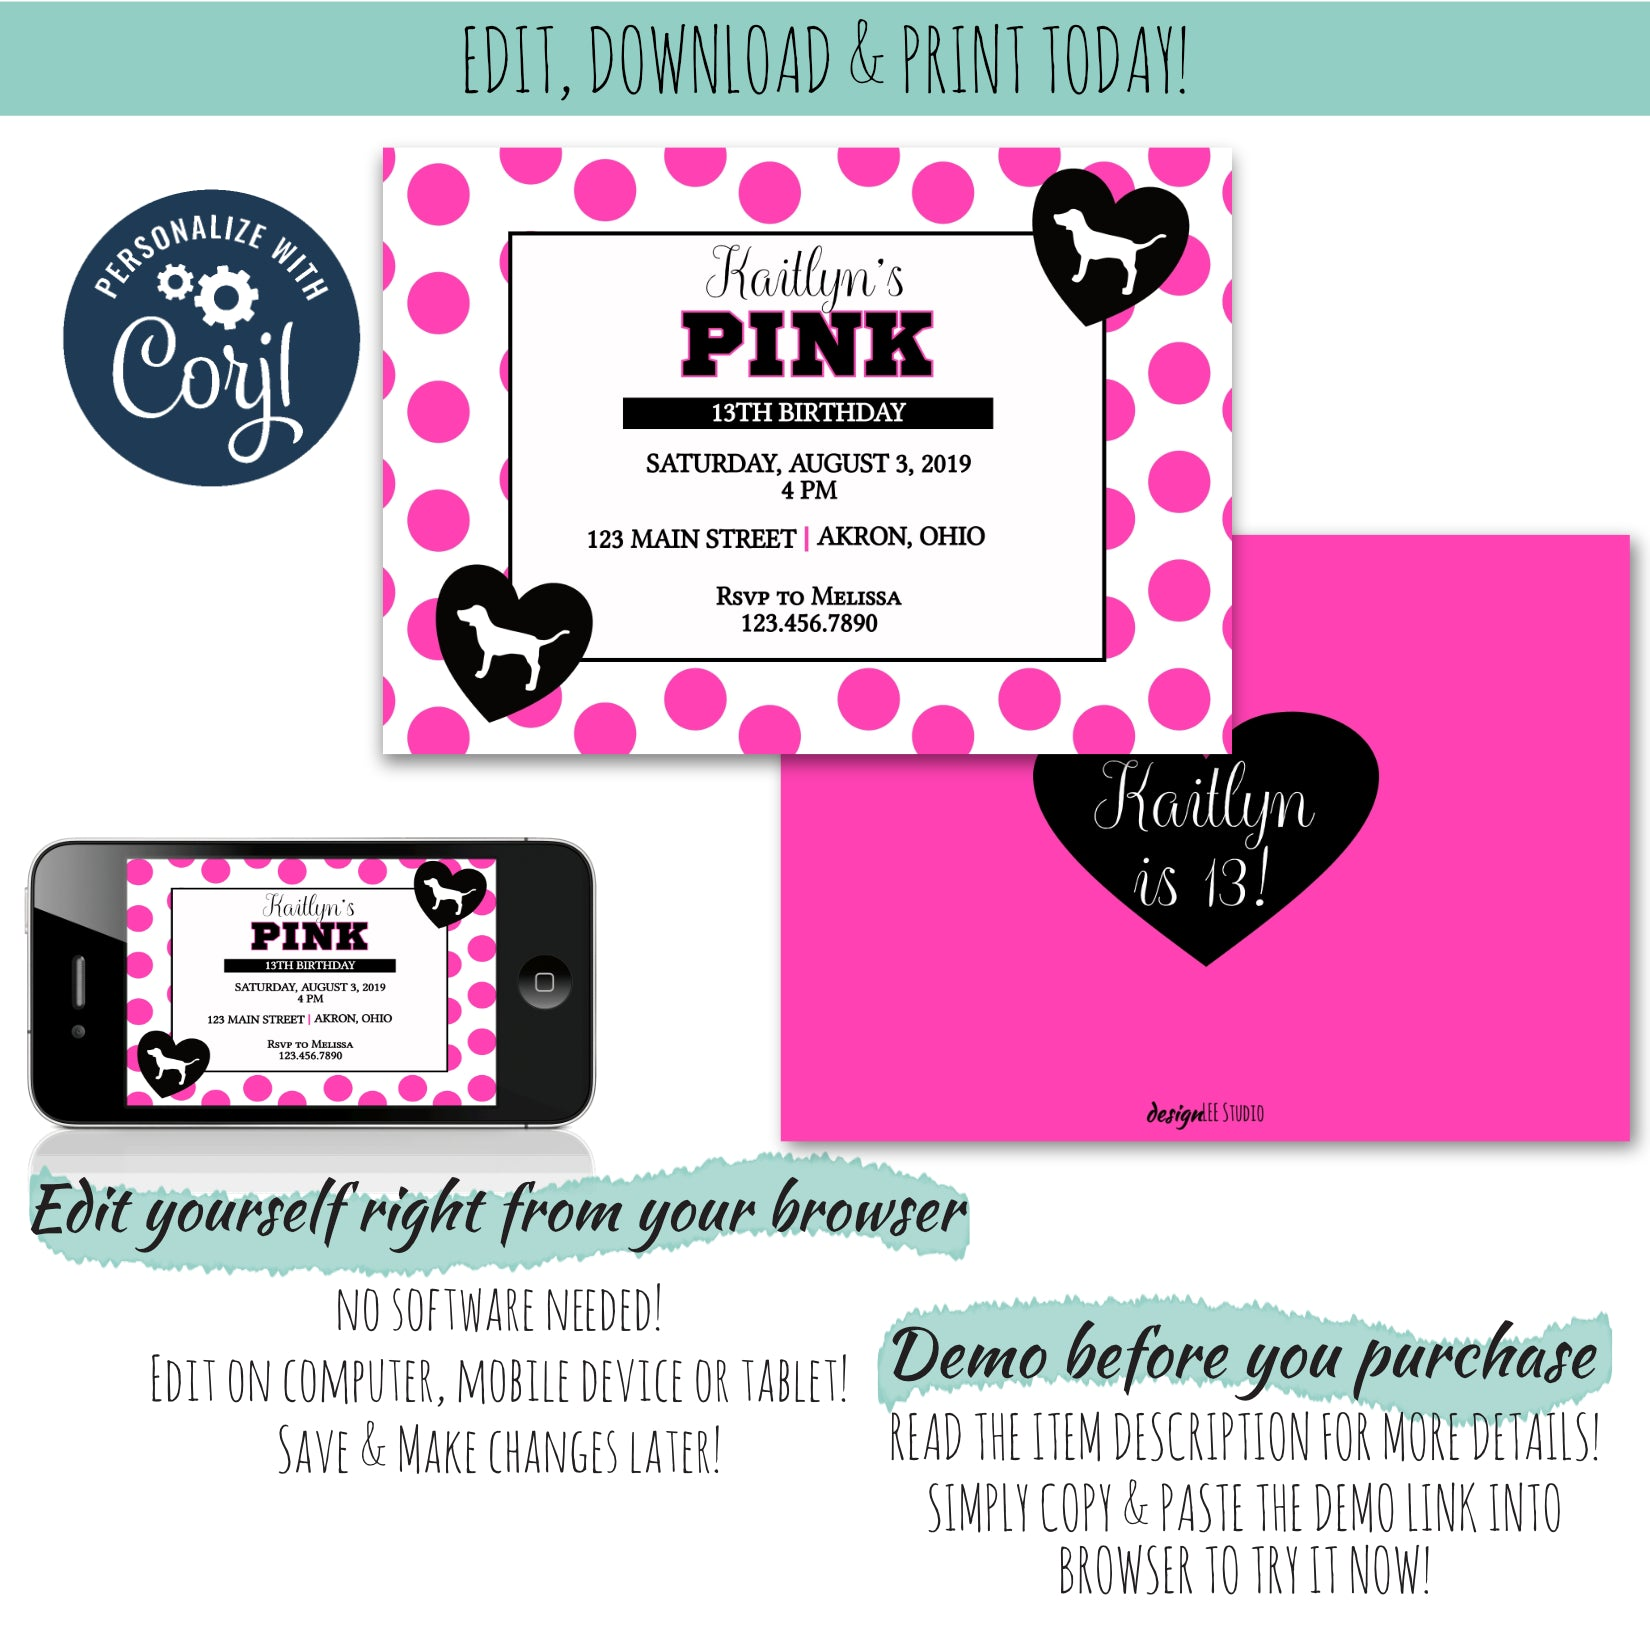 Pretty in Pink Birthday Invitation | Girls Birthday Party Invitation | Personalize, Edit, & Download Today!, Birthday Invite, designLEE Studio, designLEE Studio